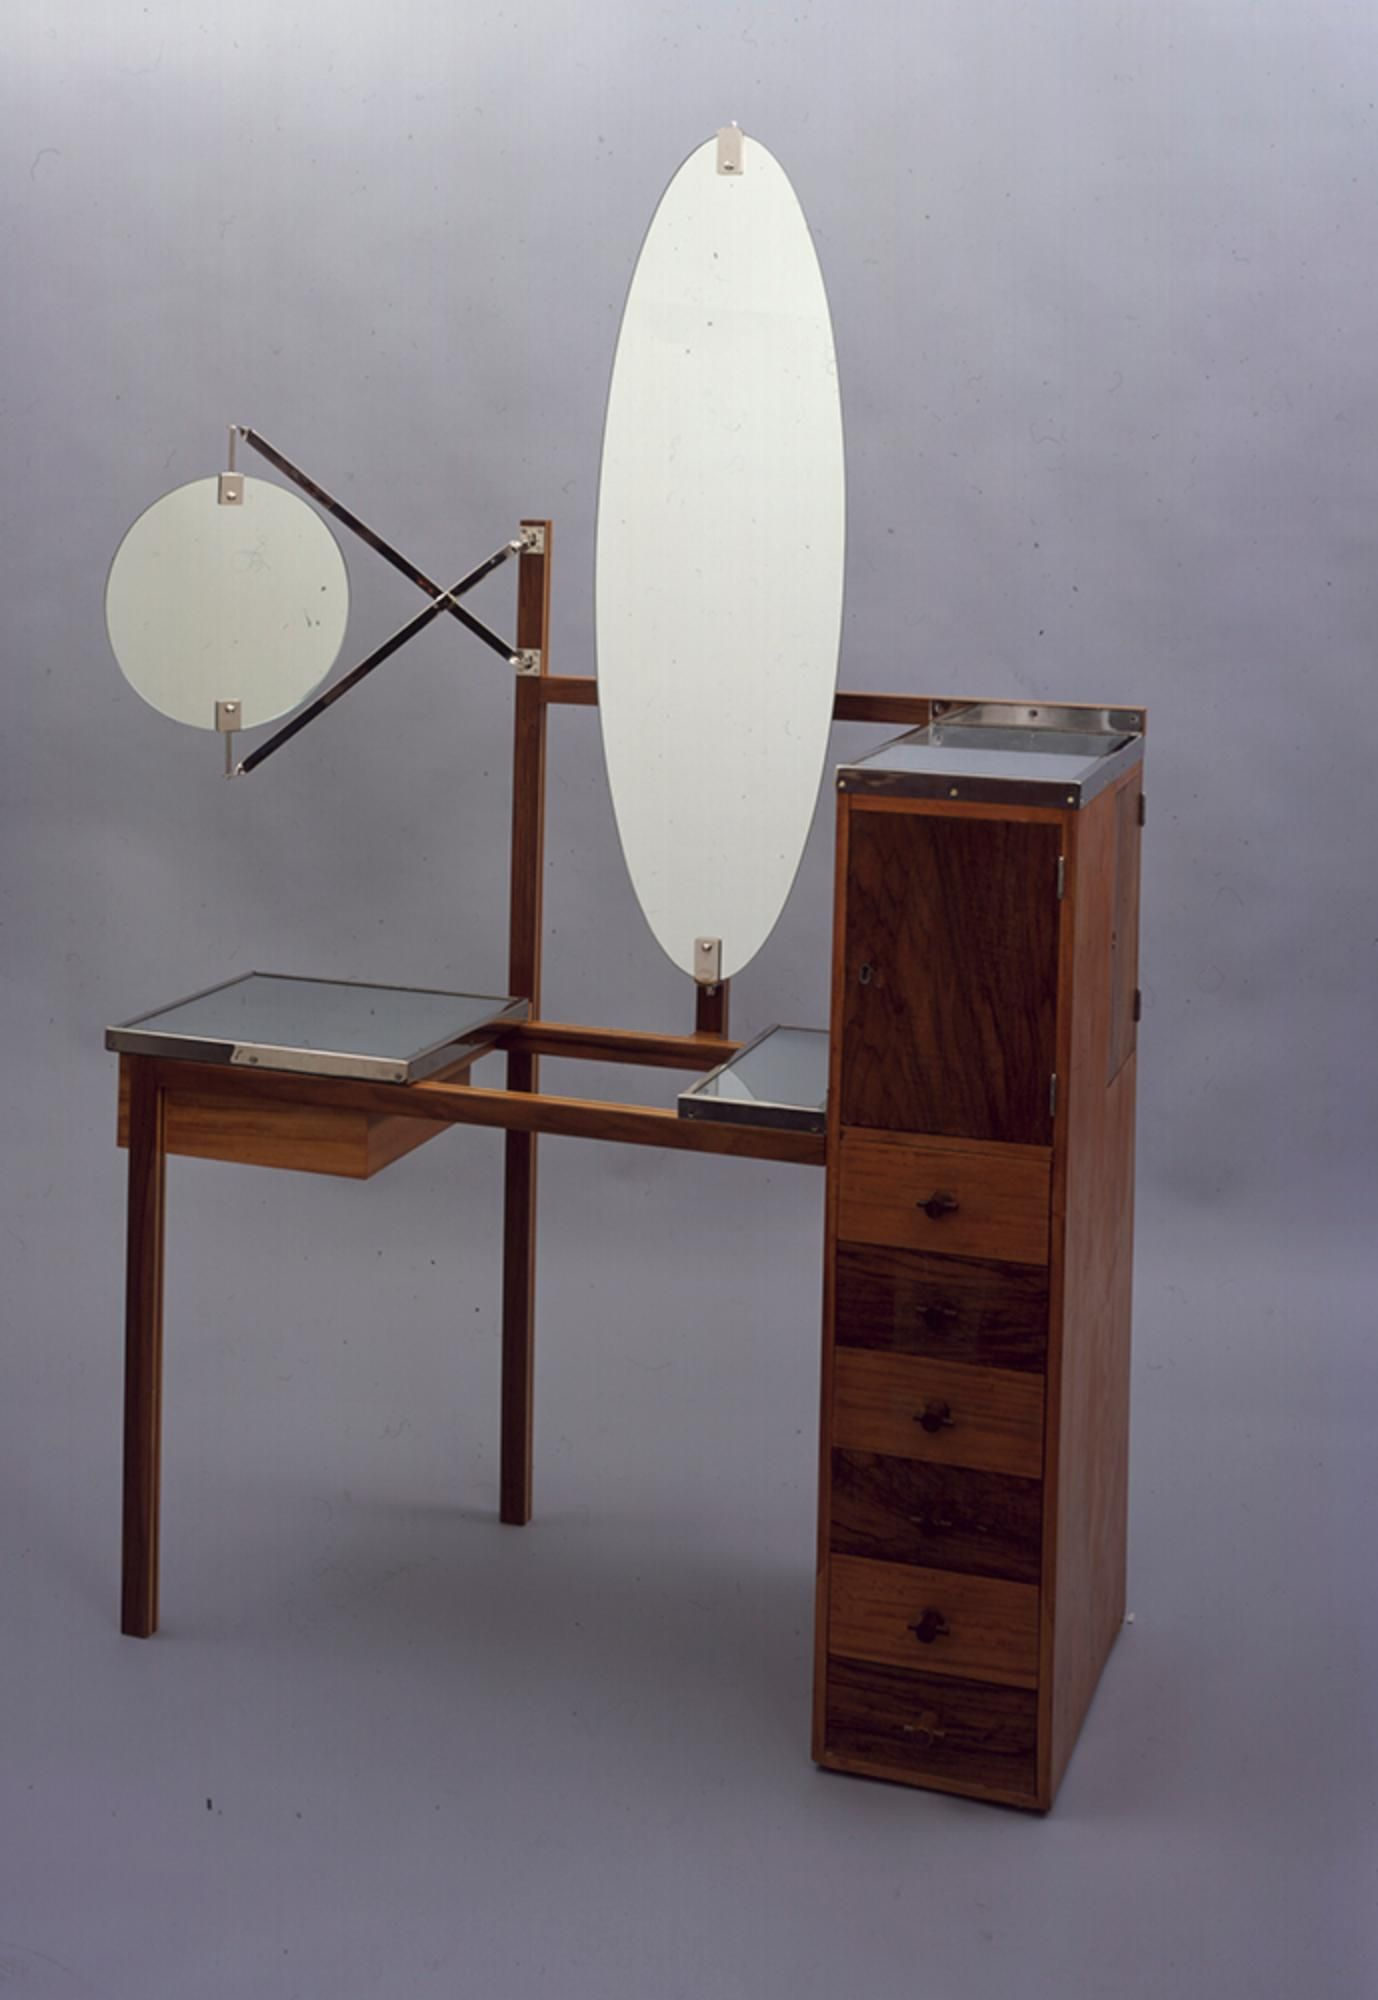 Bauhaus pendant lamp marianne brandt and hans przyrembel 1925 - The School Of Bauhaus Lady S Dressing Table From The Haus Am Horn 1923